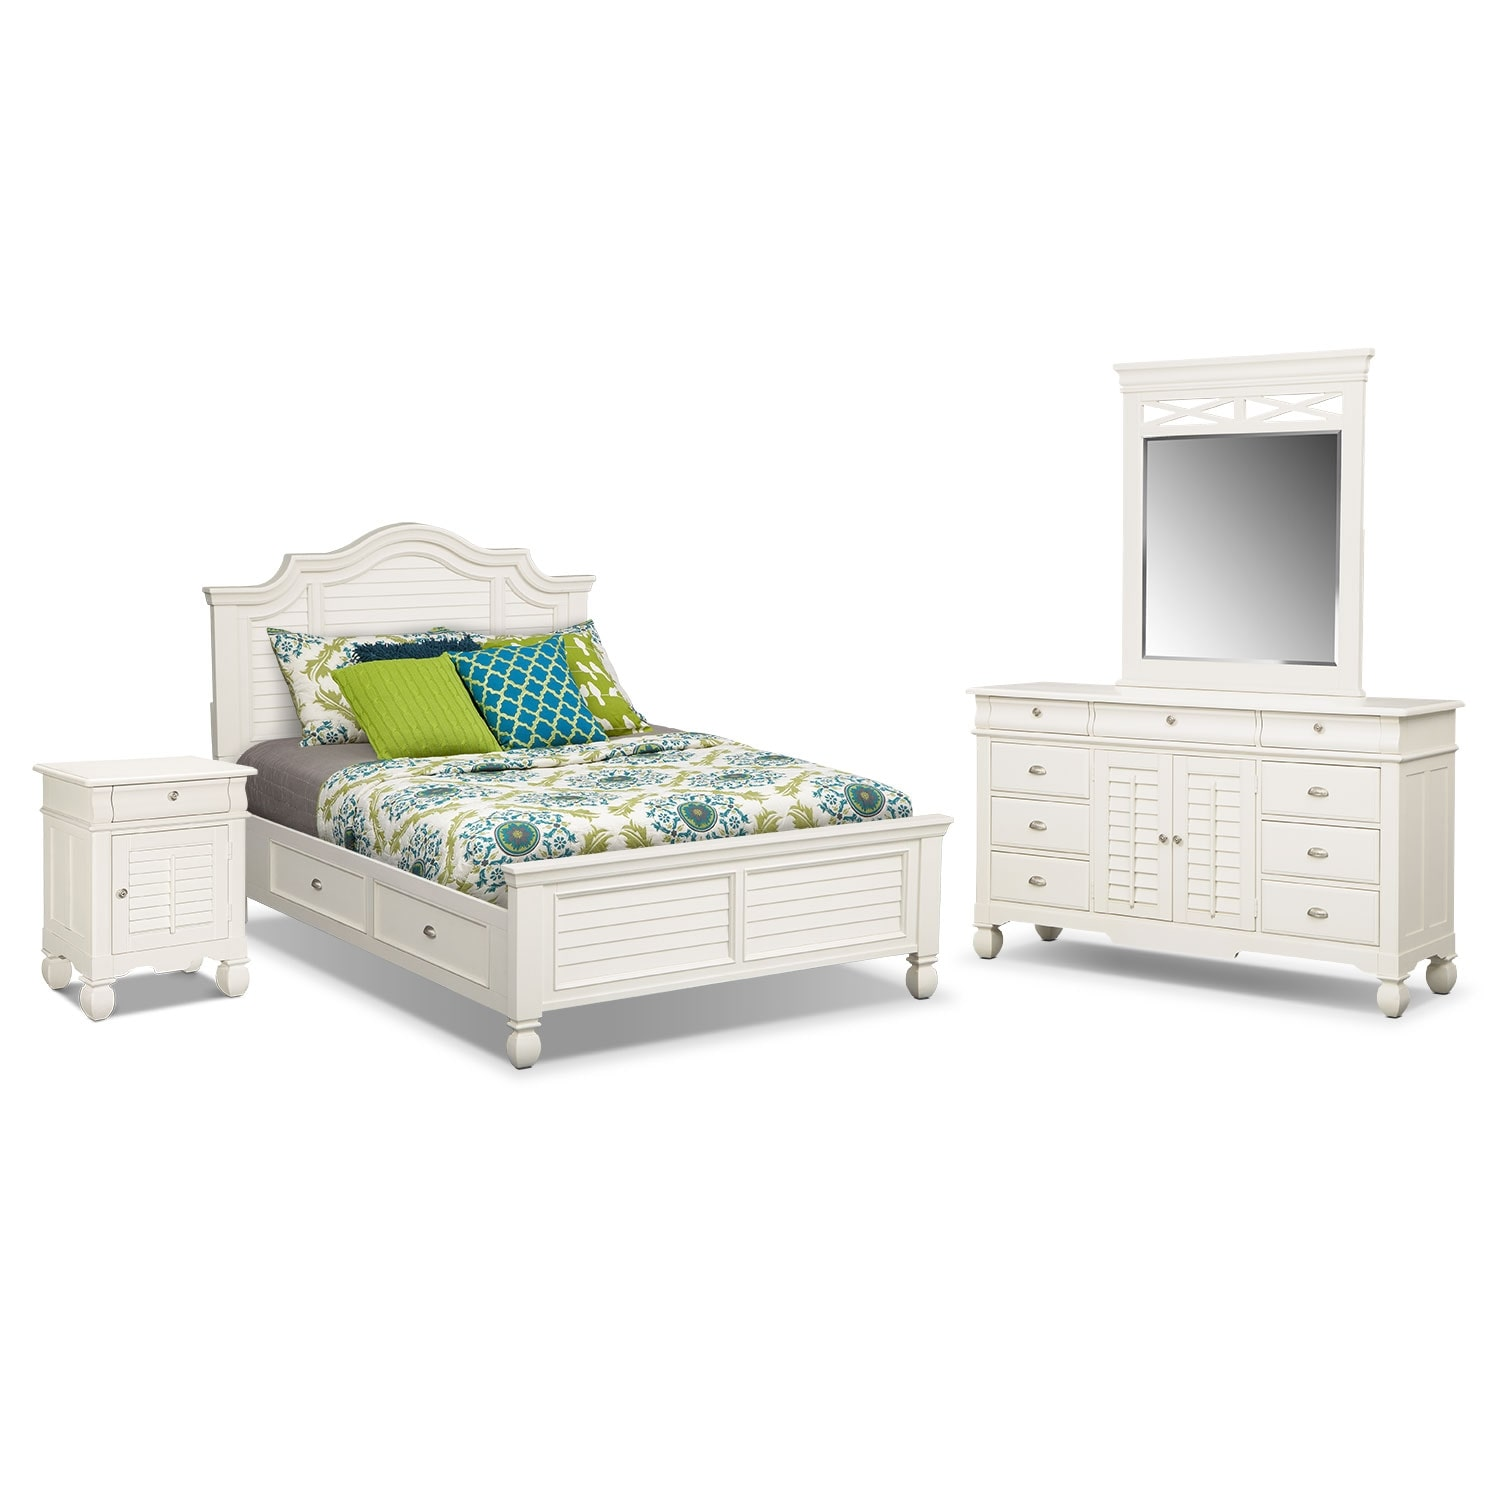 Plantation Cove 6-Piece King Storage Bedroom Set with Door Nightstand - White